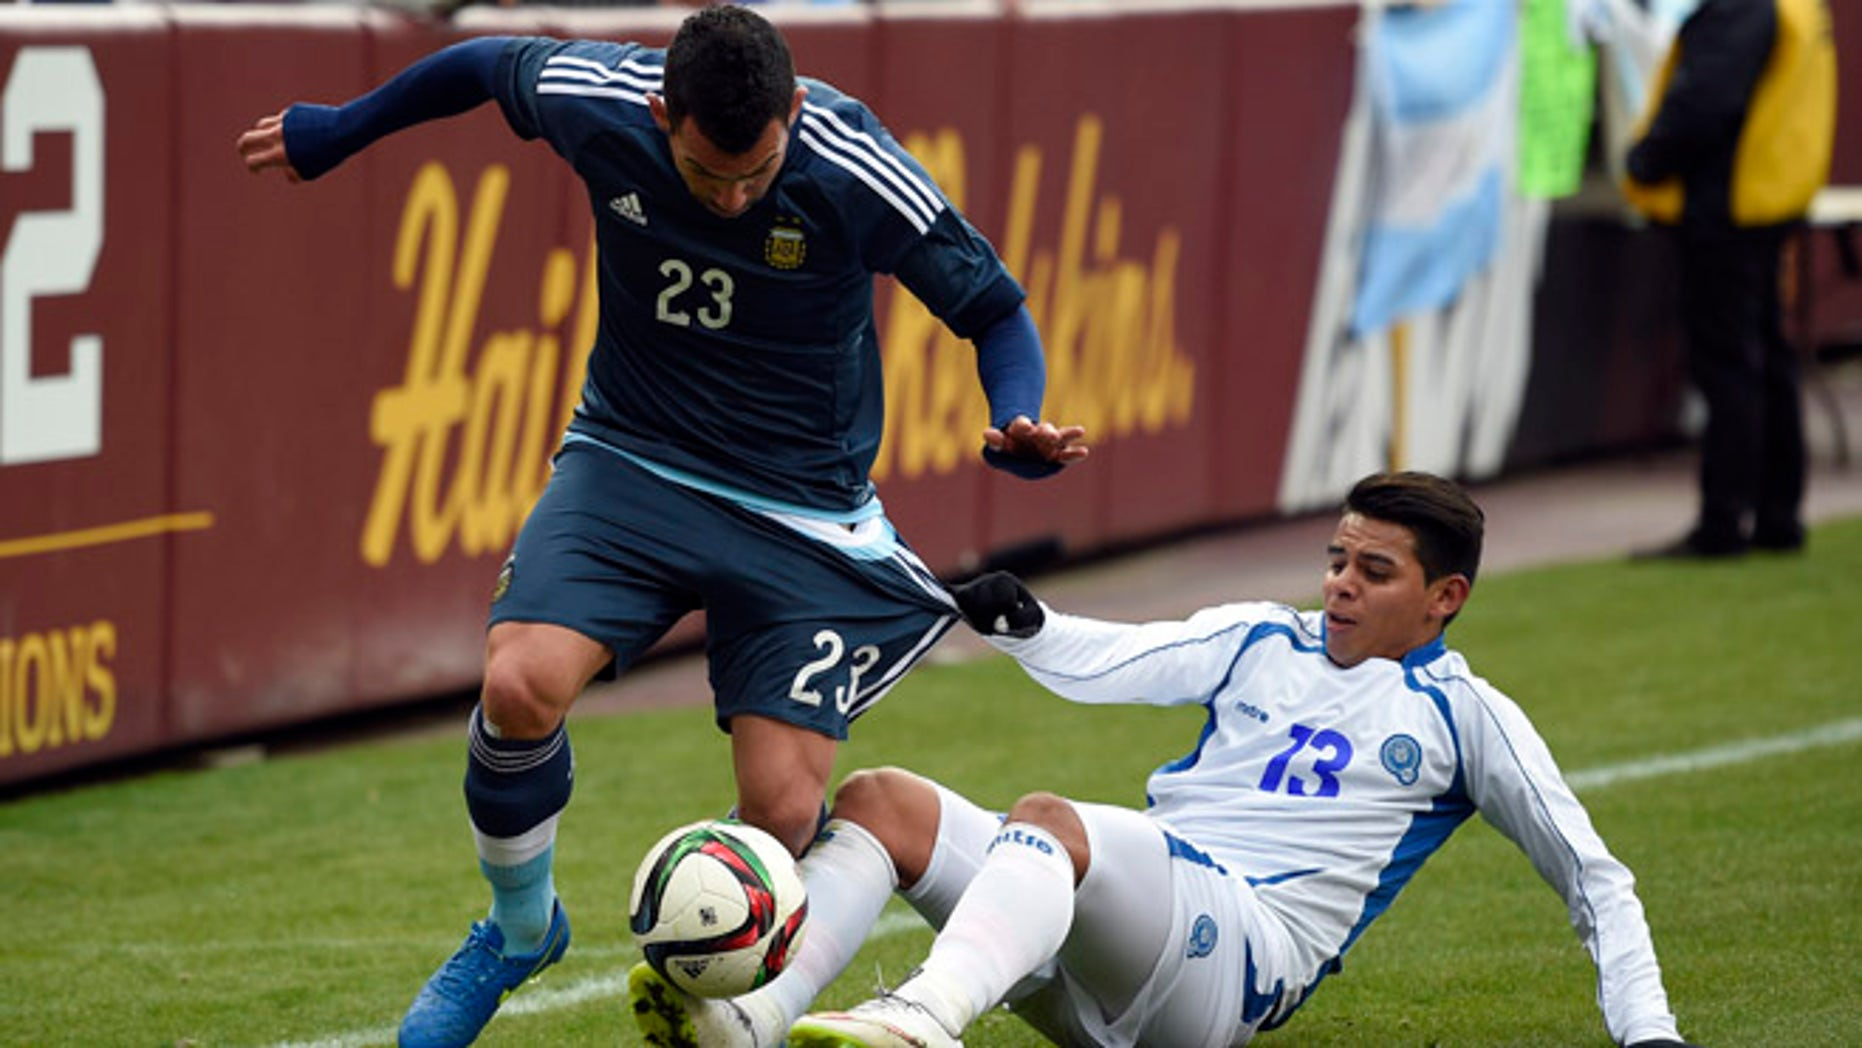 El Salvador's Alexander Larin (13) pulls on the shorts of Carlos Tevez (23) during the first half of an international friendly soccer game Saturday, March 28, 2015, in Landover, Md. (AP Photo/Nick Wass)